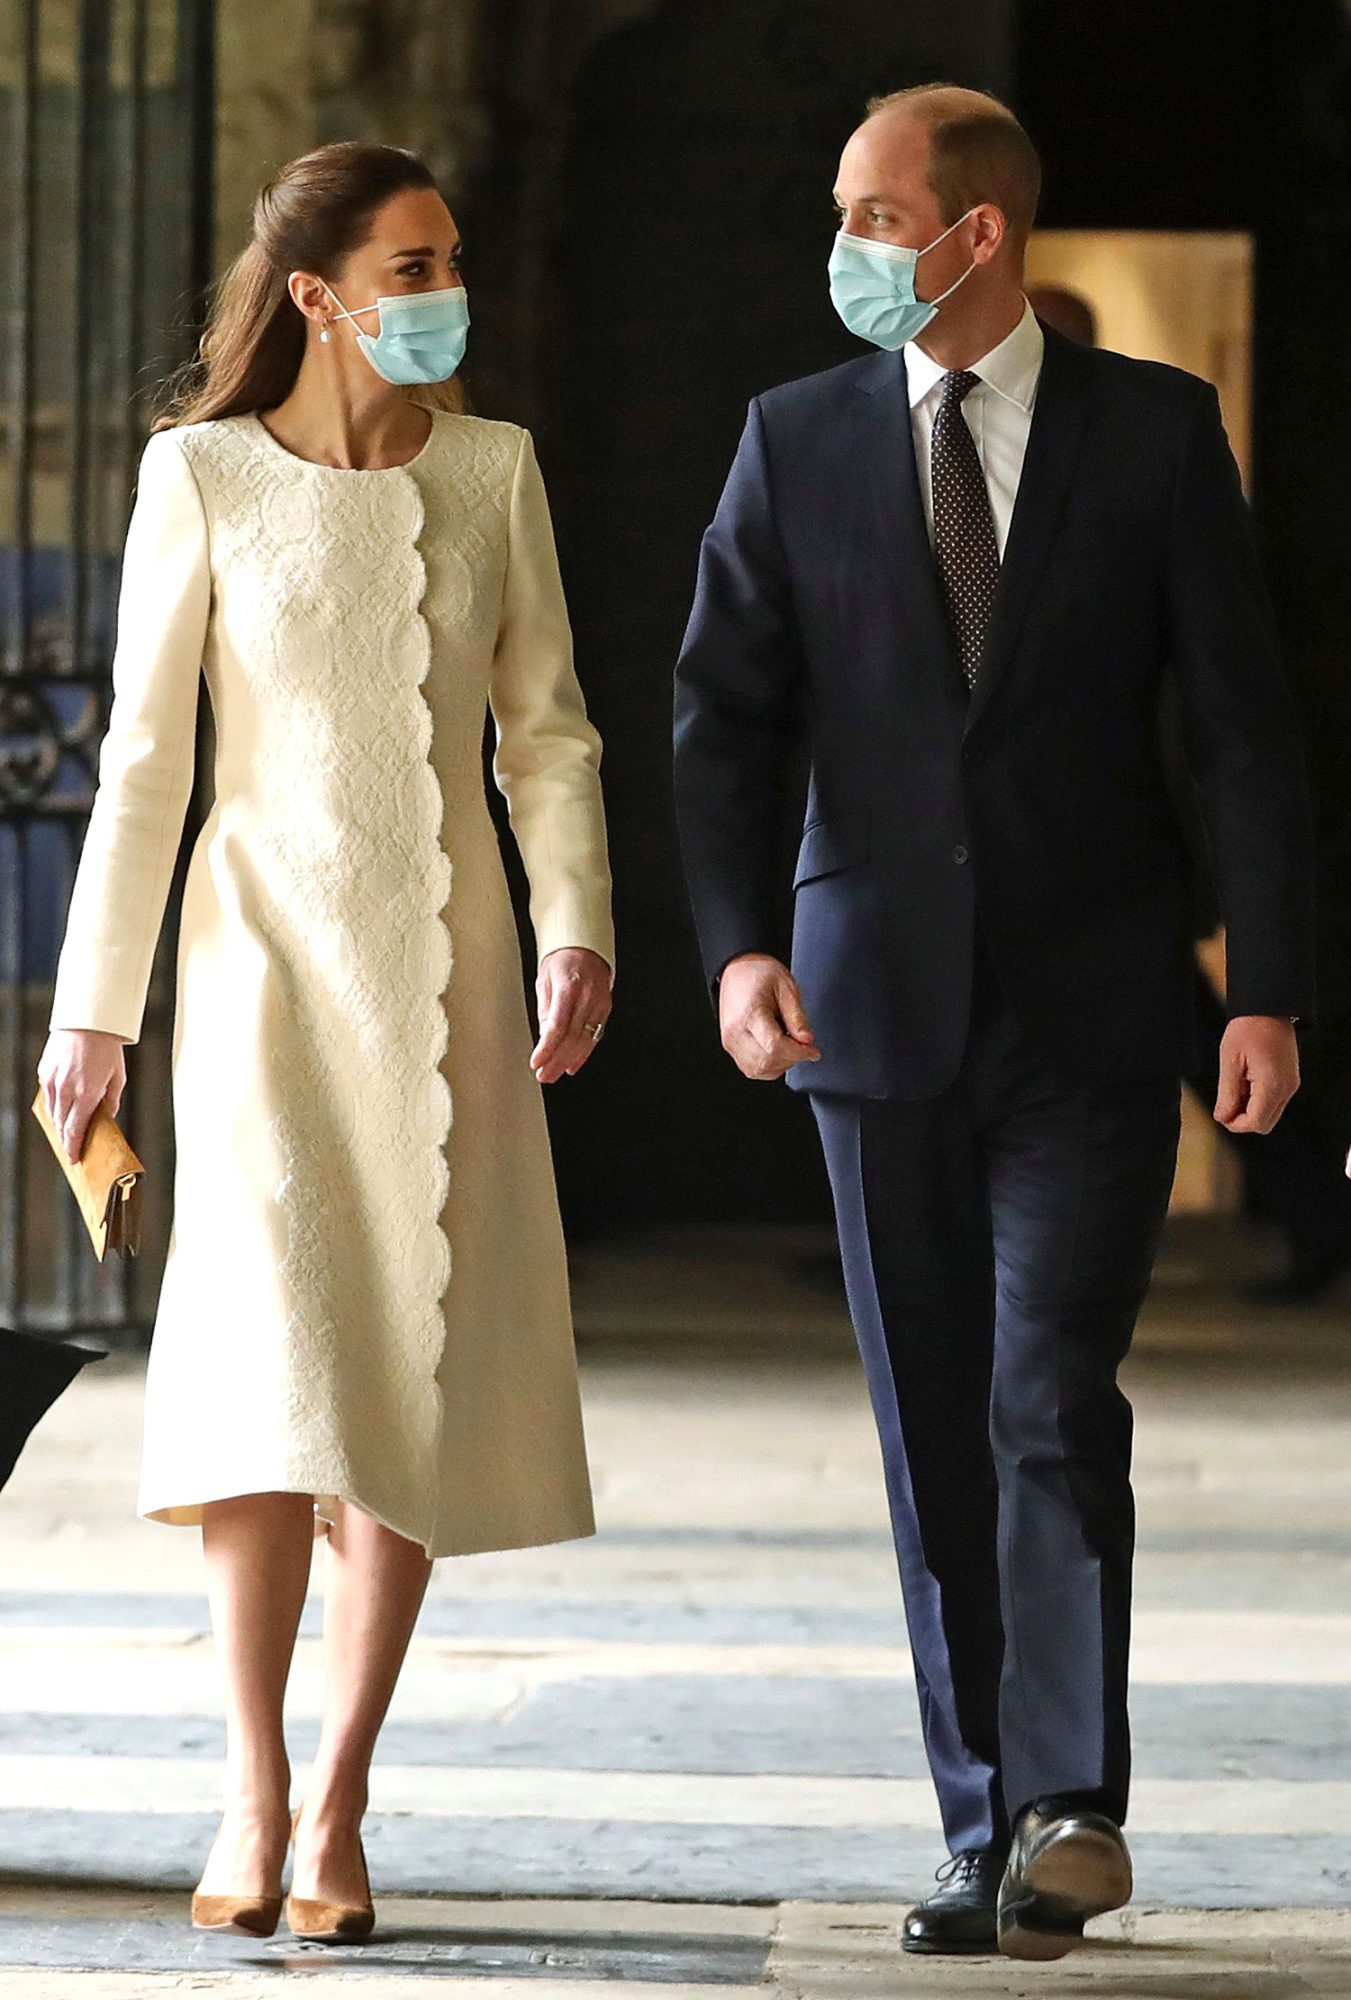 Prince William and Kate, Duchess of Cambridge arrive for a visit to the vaccination center at Westminster Abbey